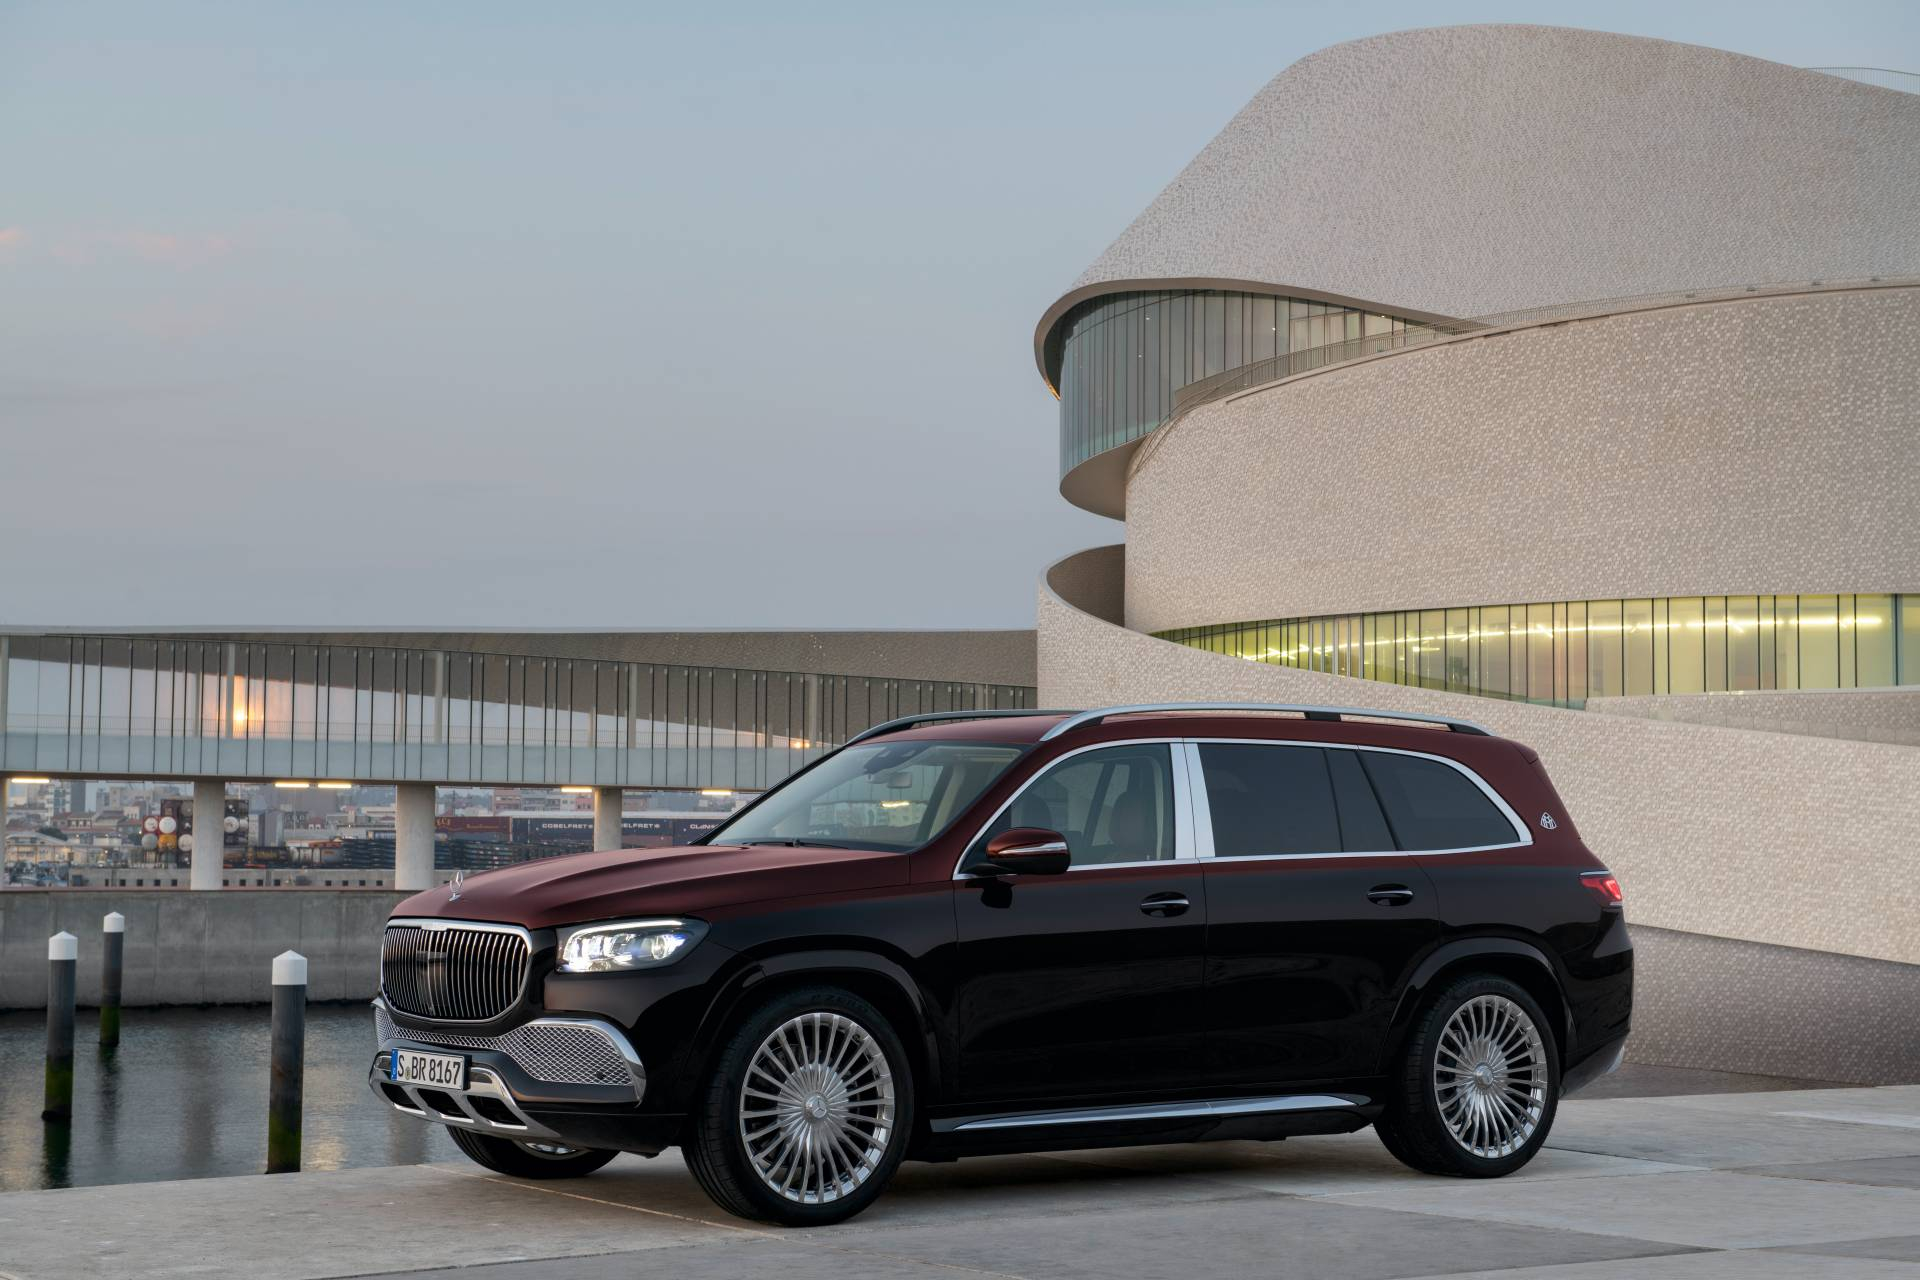 2021 Mercedes-Maybach Gls 600 Debuts As The Ultimate S-Class 2022 Buick Envision Brochure, Build, Running Boards